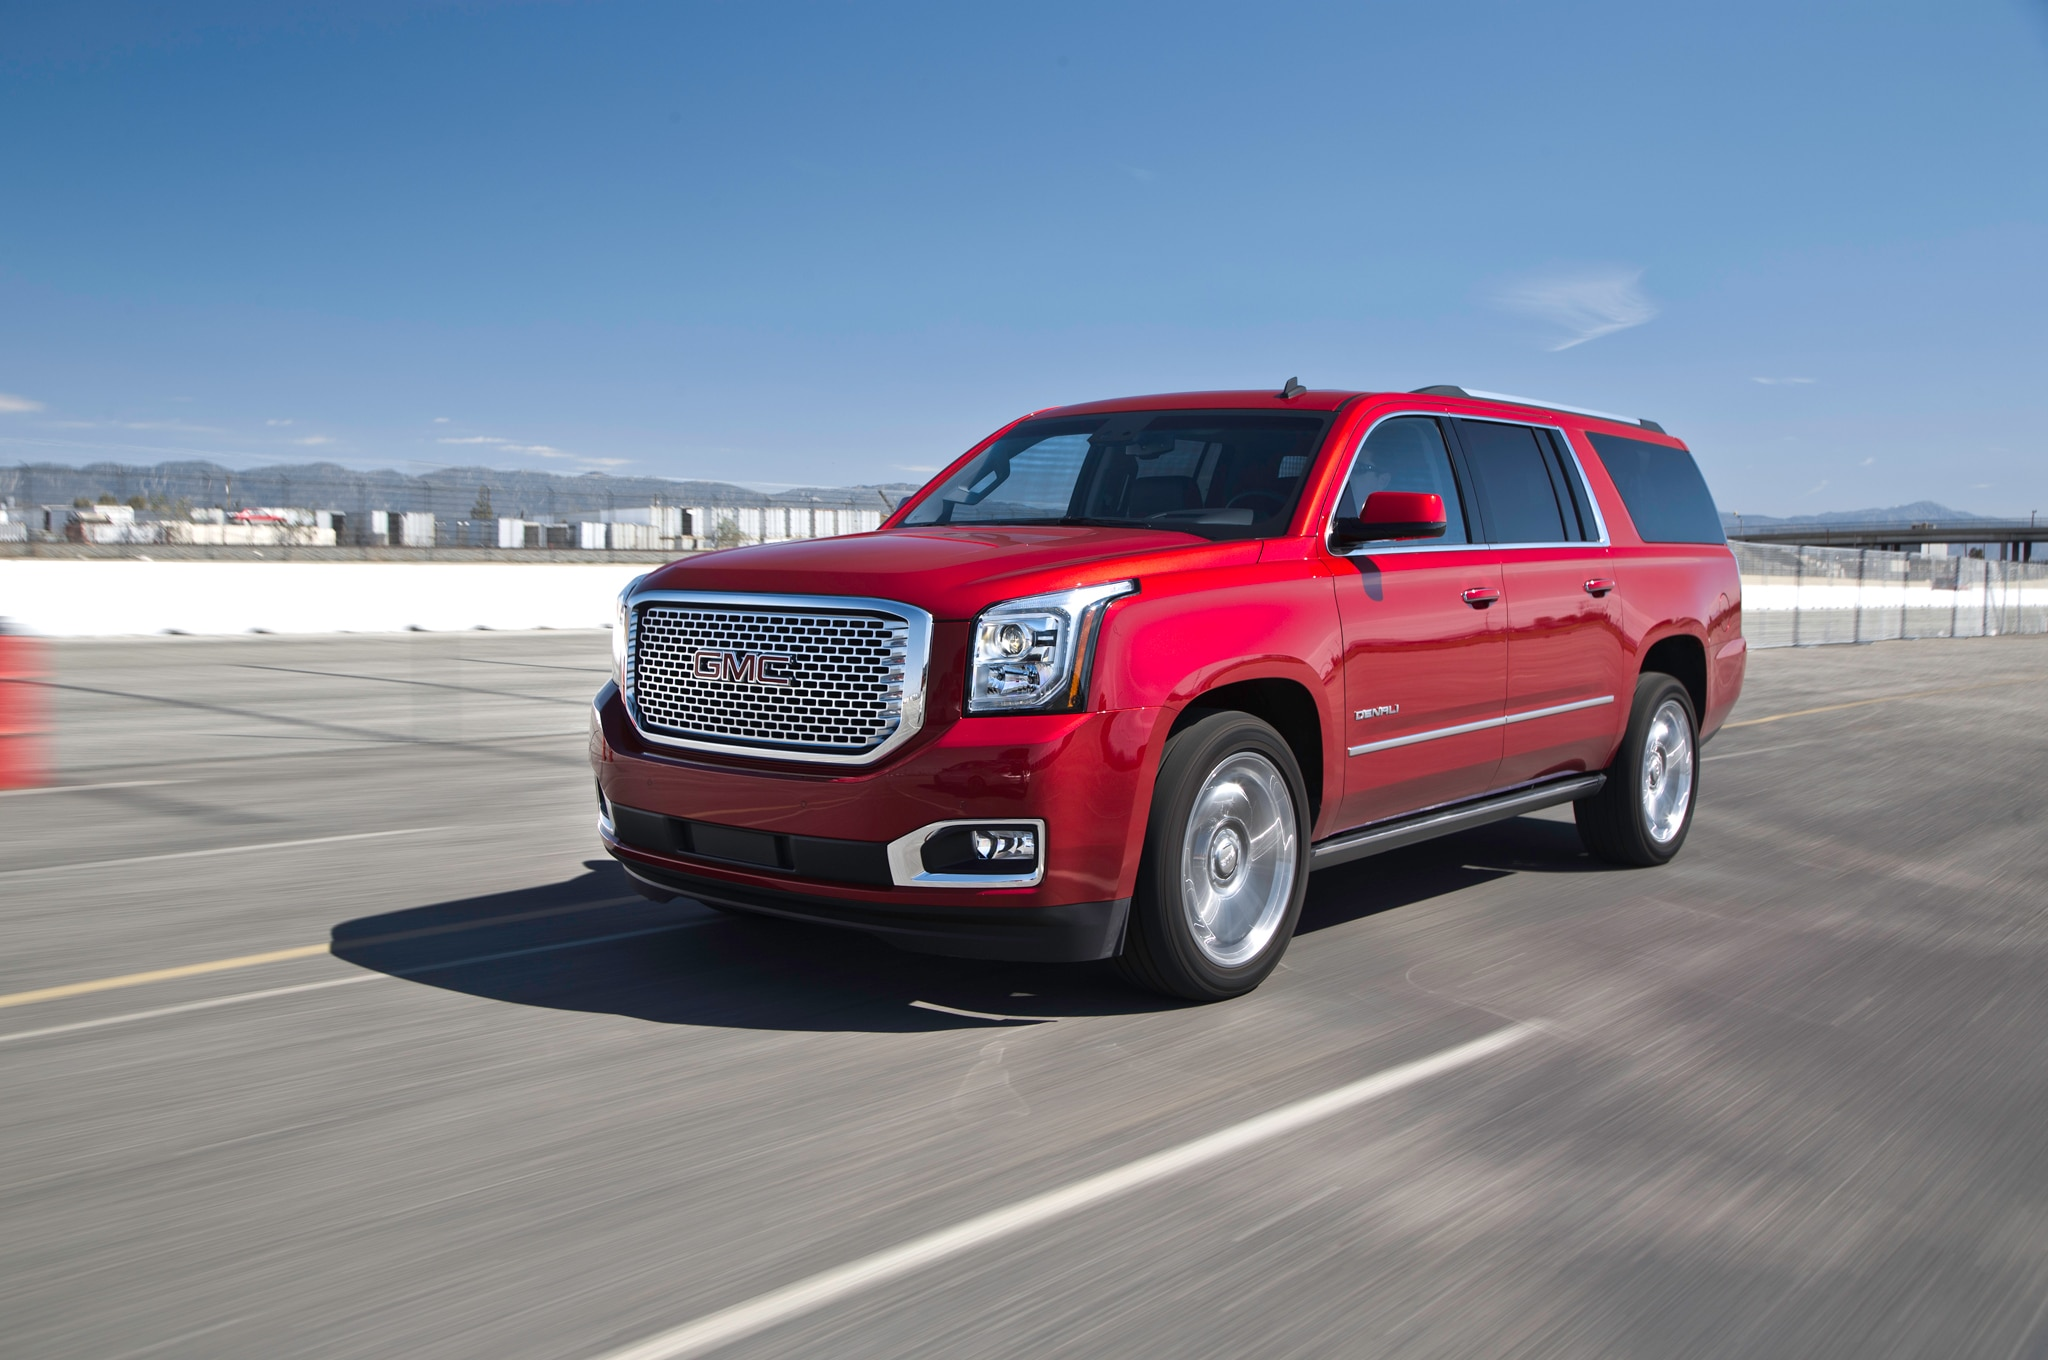 2015 Gmc Yukon And Yukon Xl Review Automobile Magazine